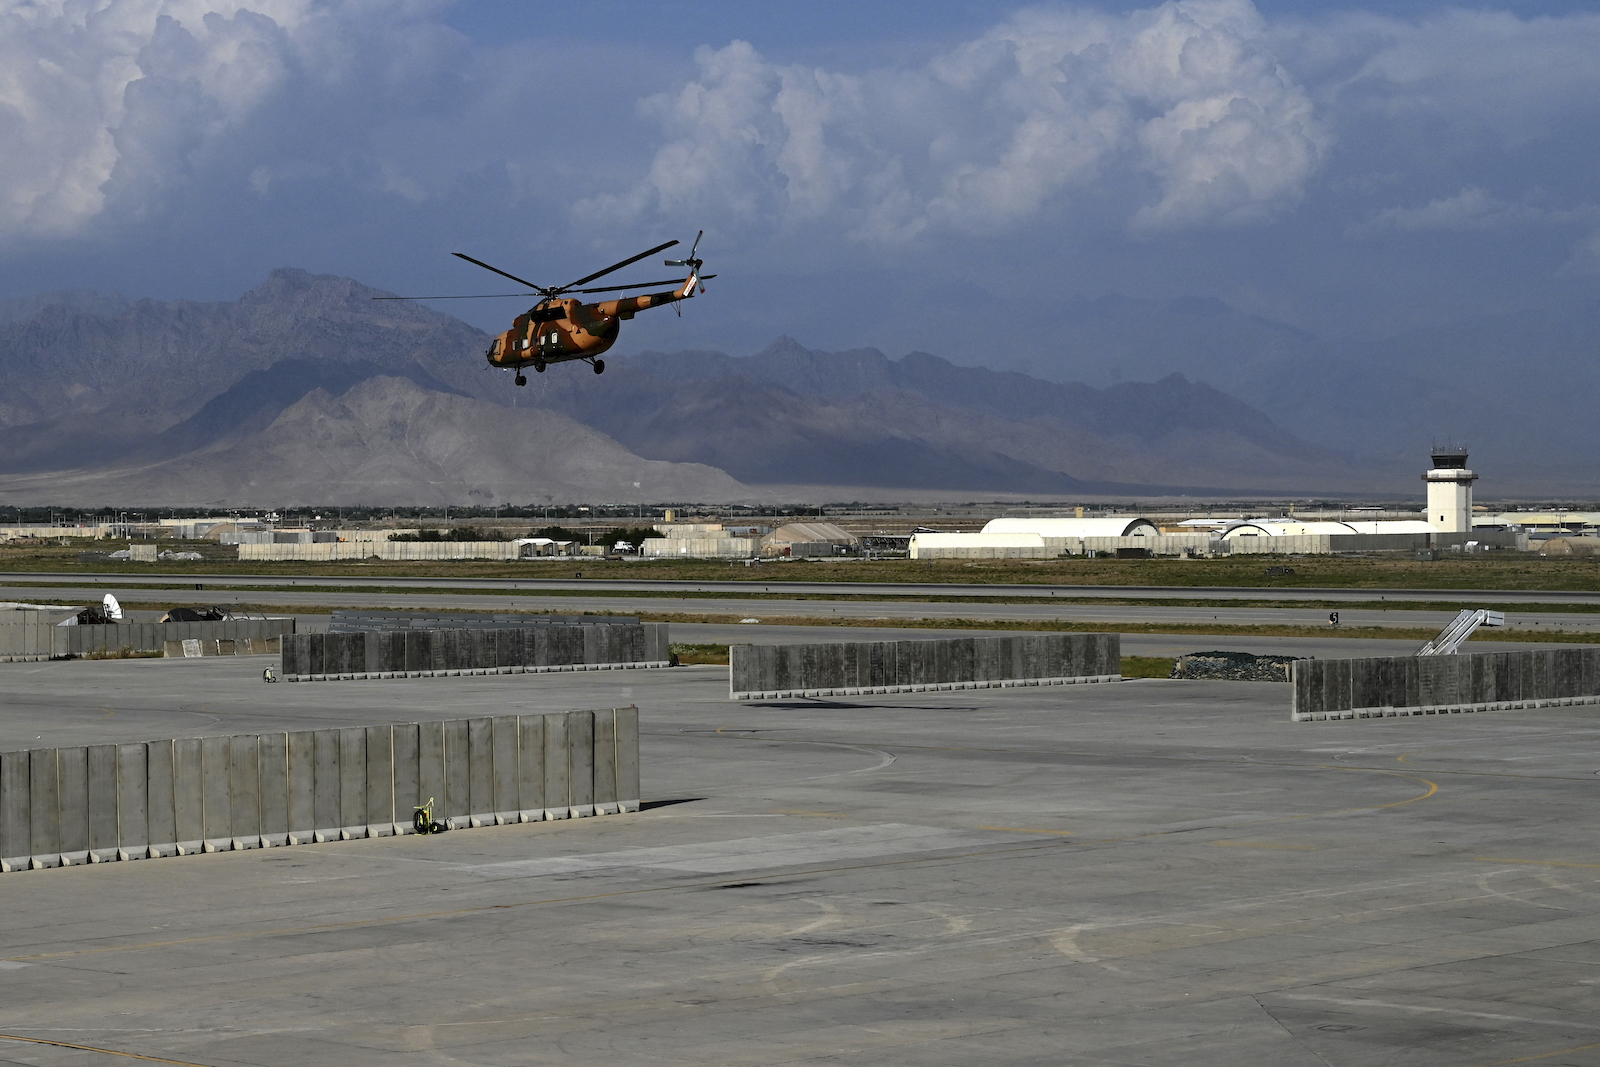 An Afghan National Army (ANA) helicopter takes off inside the Bagram US air base after all US and NATO troops left on July 5, 2021. Photo: Wakil Kohsar / AFP